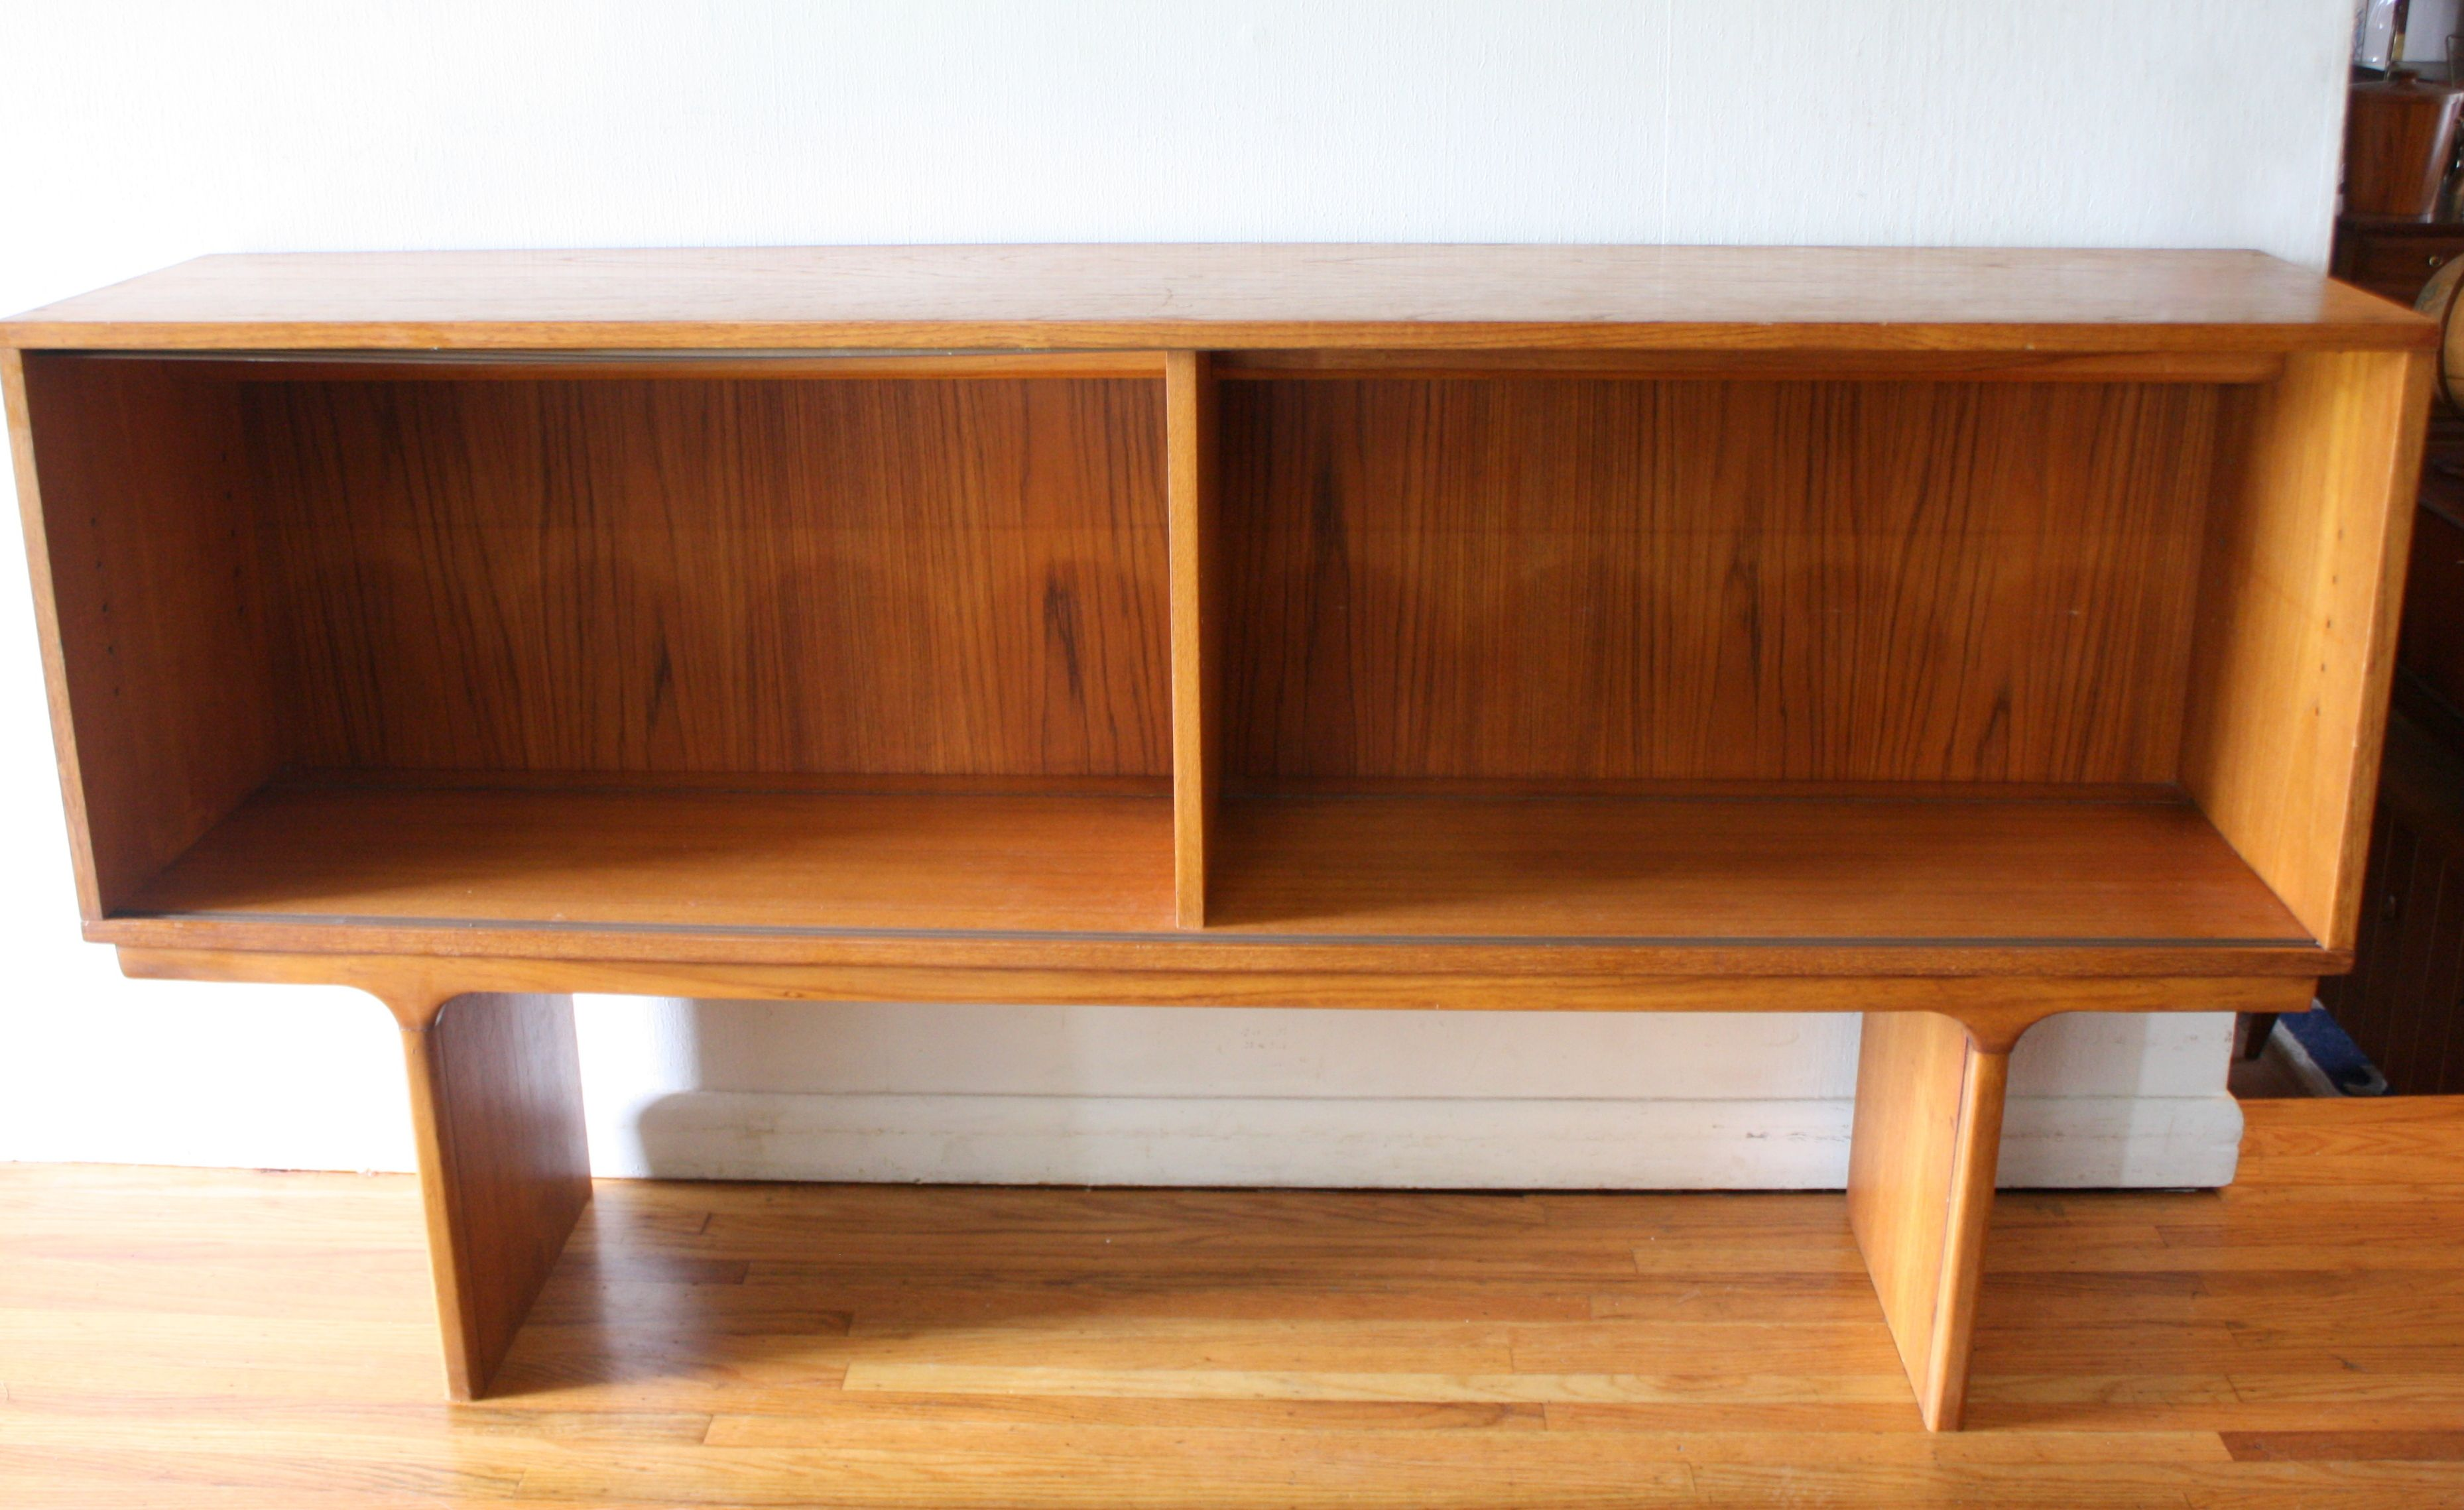 Mid Century Modern Teak Bookshelf From The Dixies Scova Collection